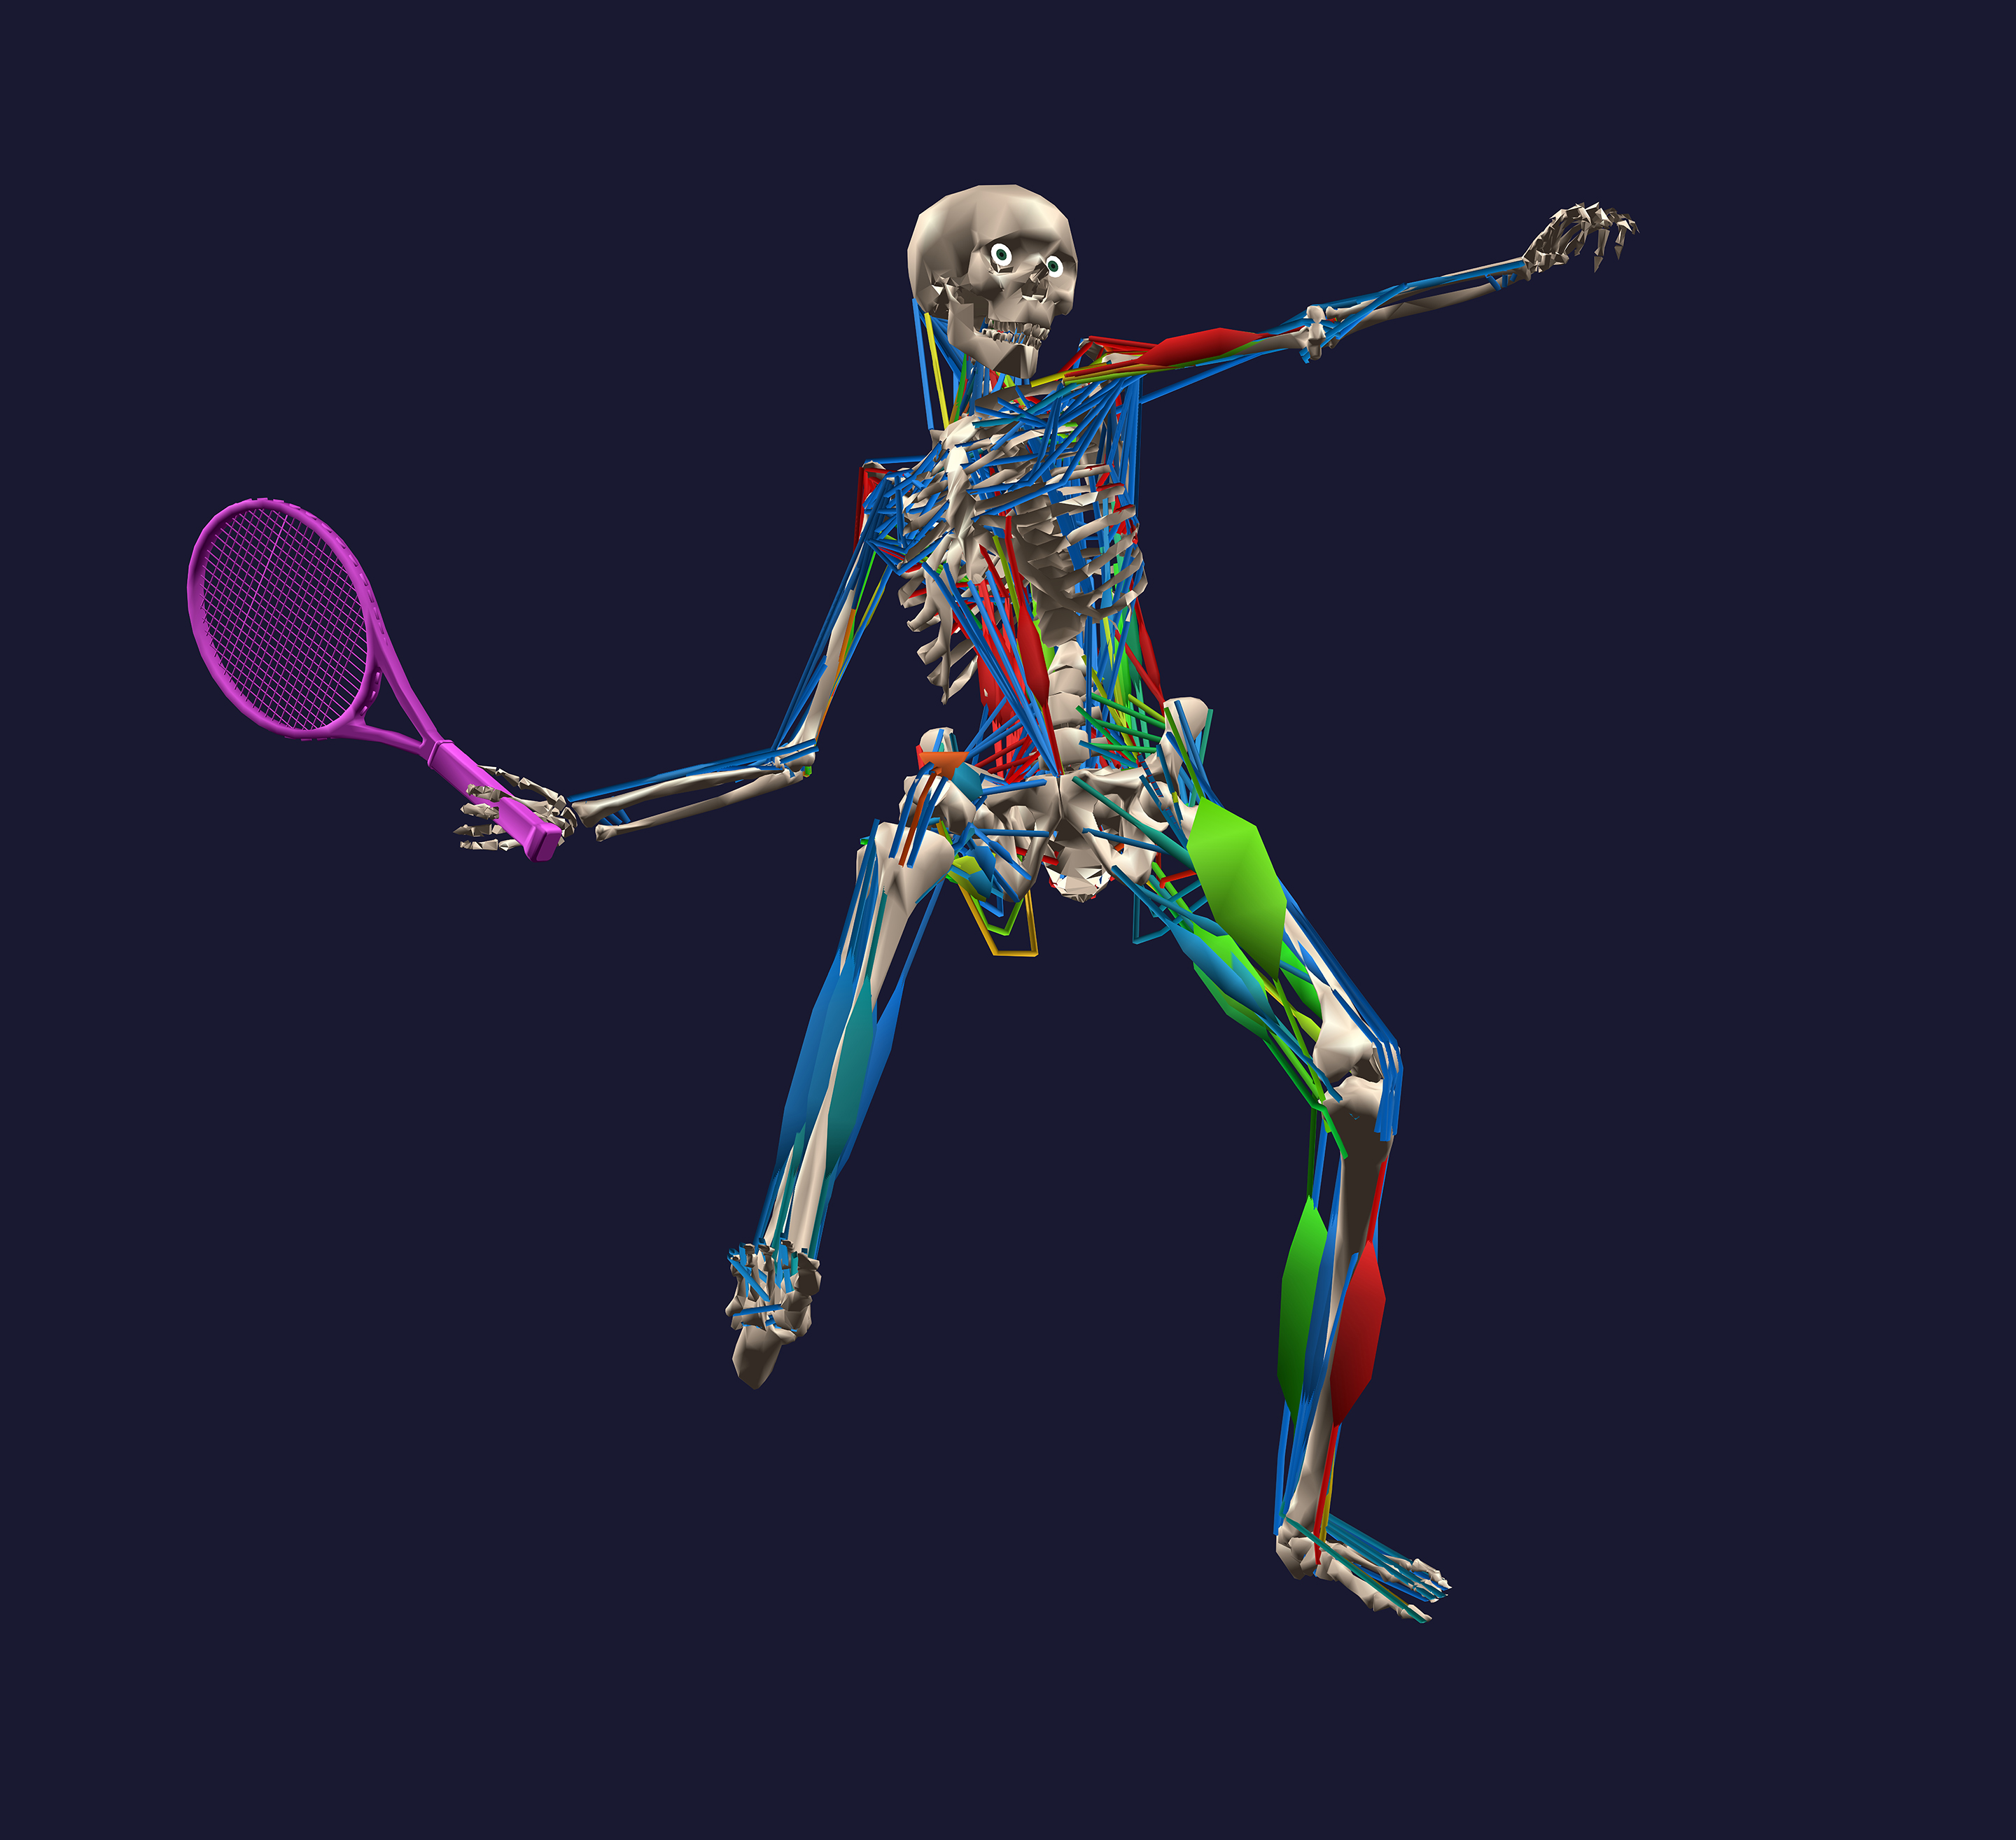 A still from the motion capture footage of a tennis player hitting a shot and the effect it has on their body.